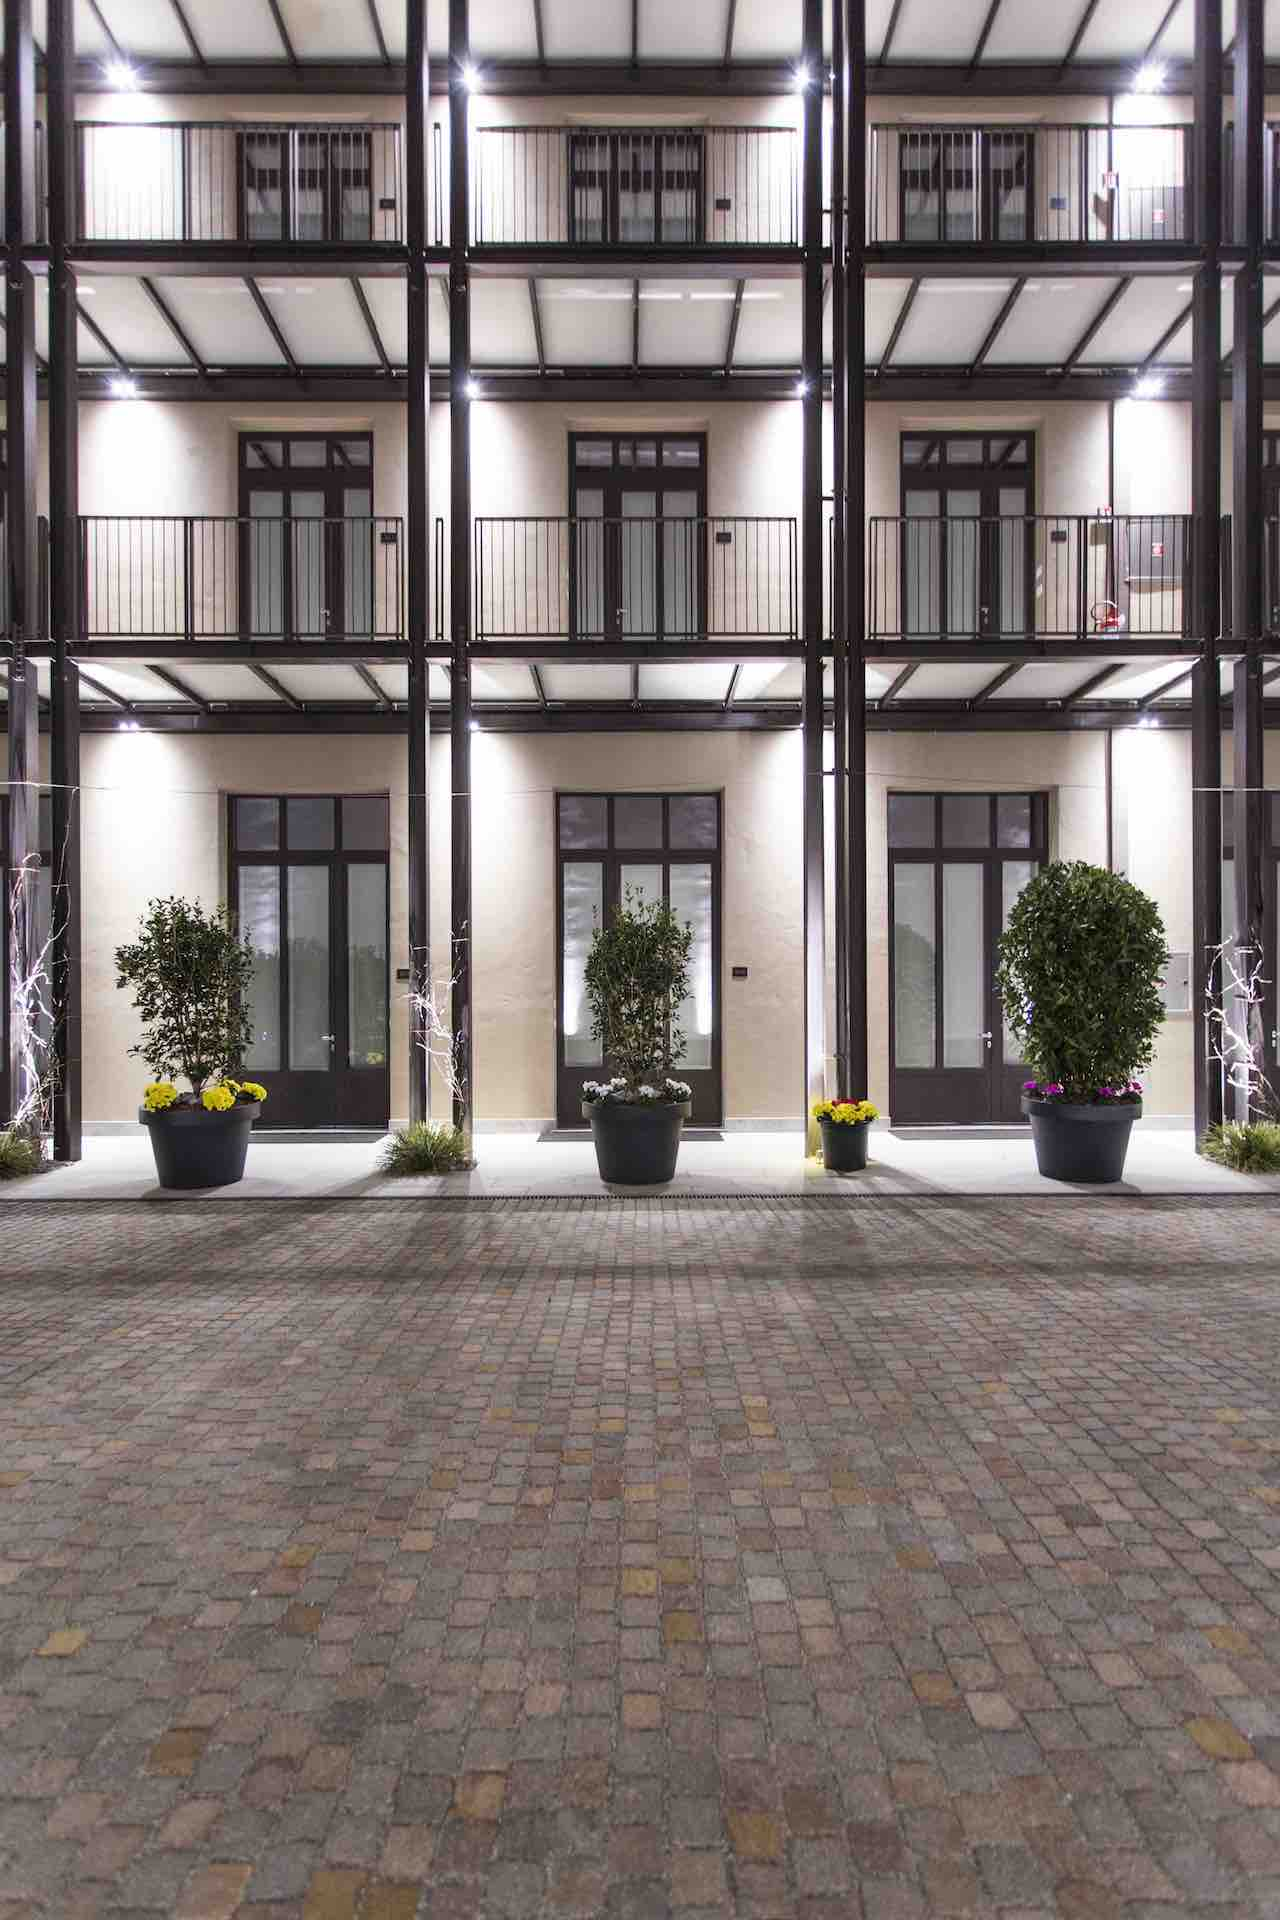 Savona 18 Suites in Milan. The hotel's most exclusive suites overlook an internal courtyard